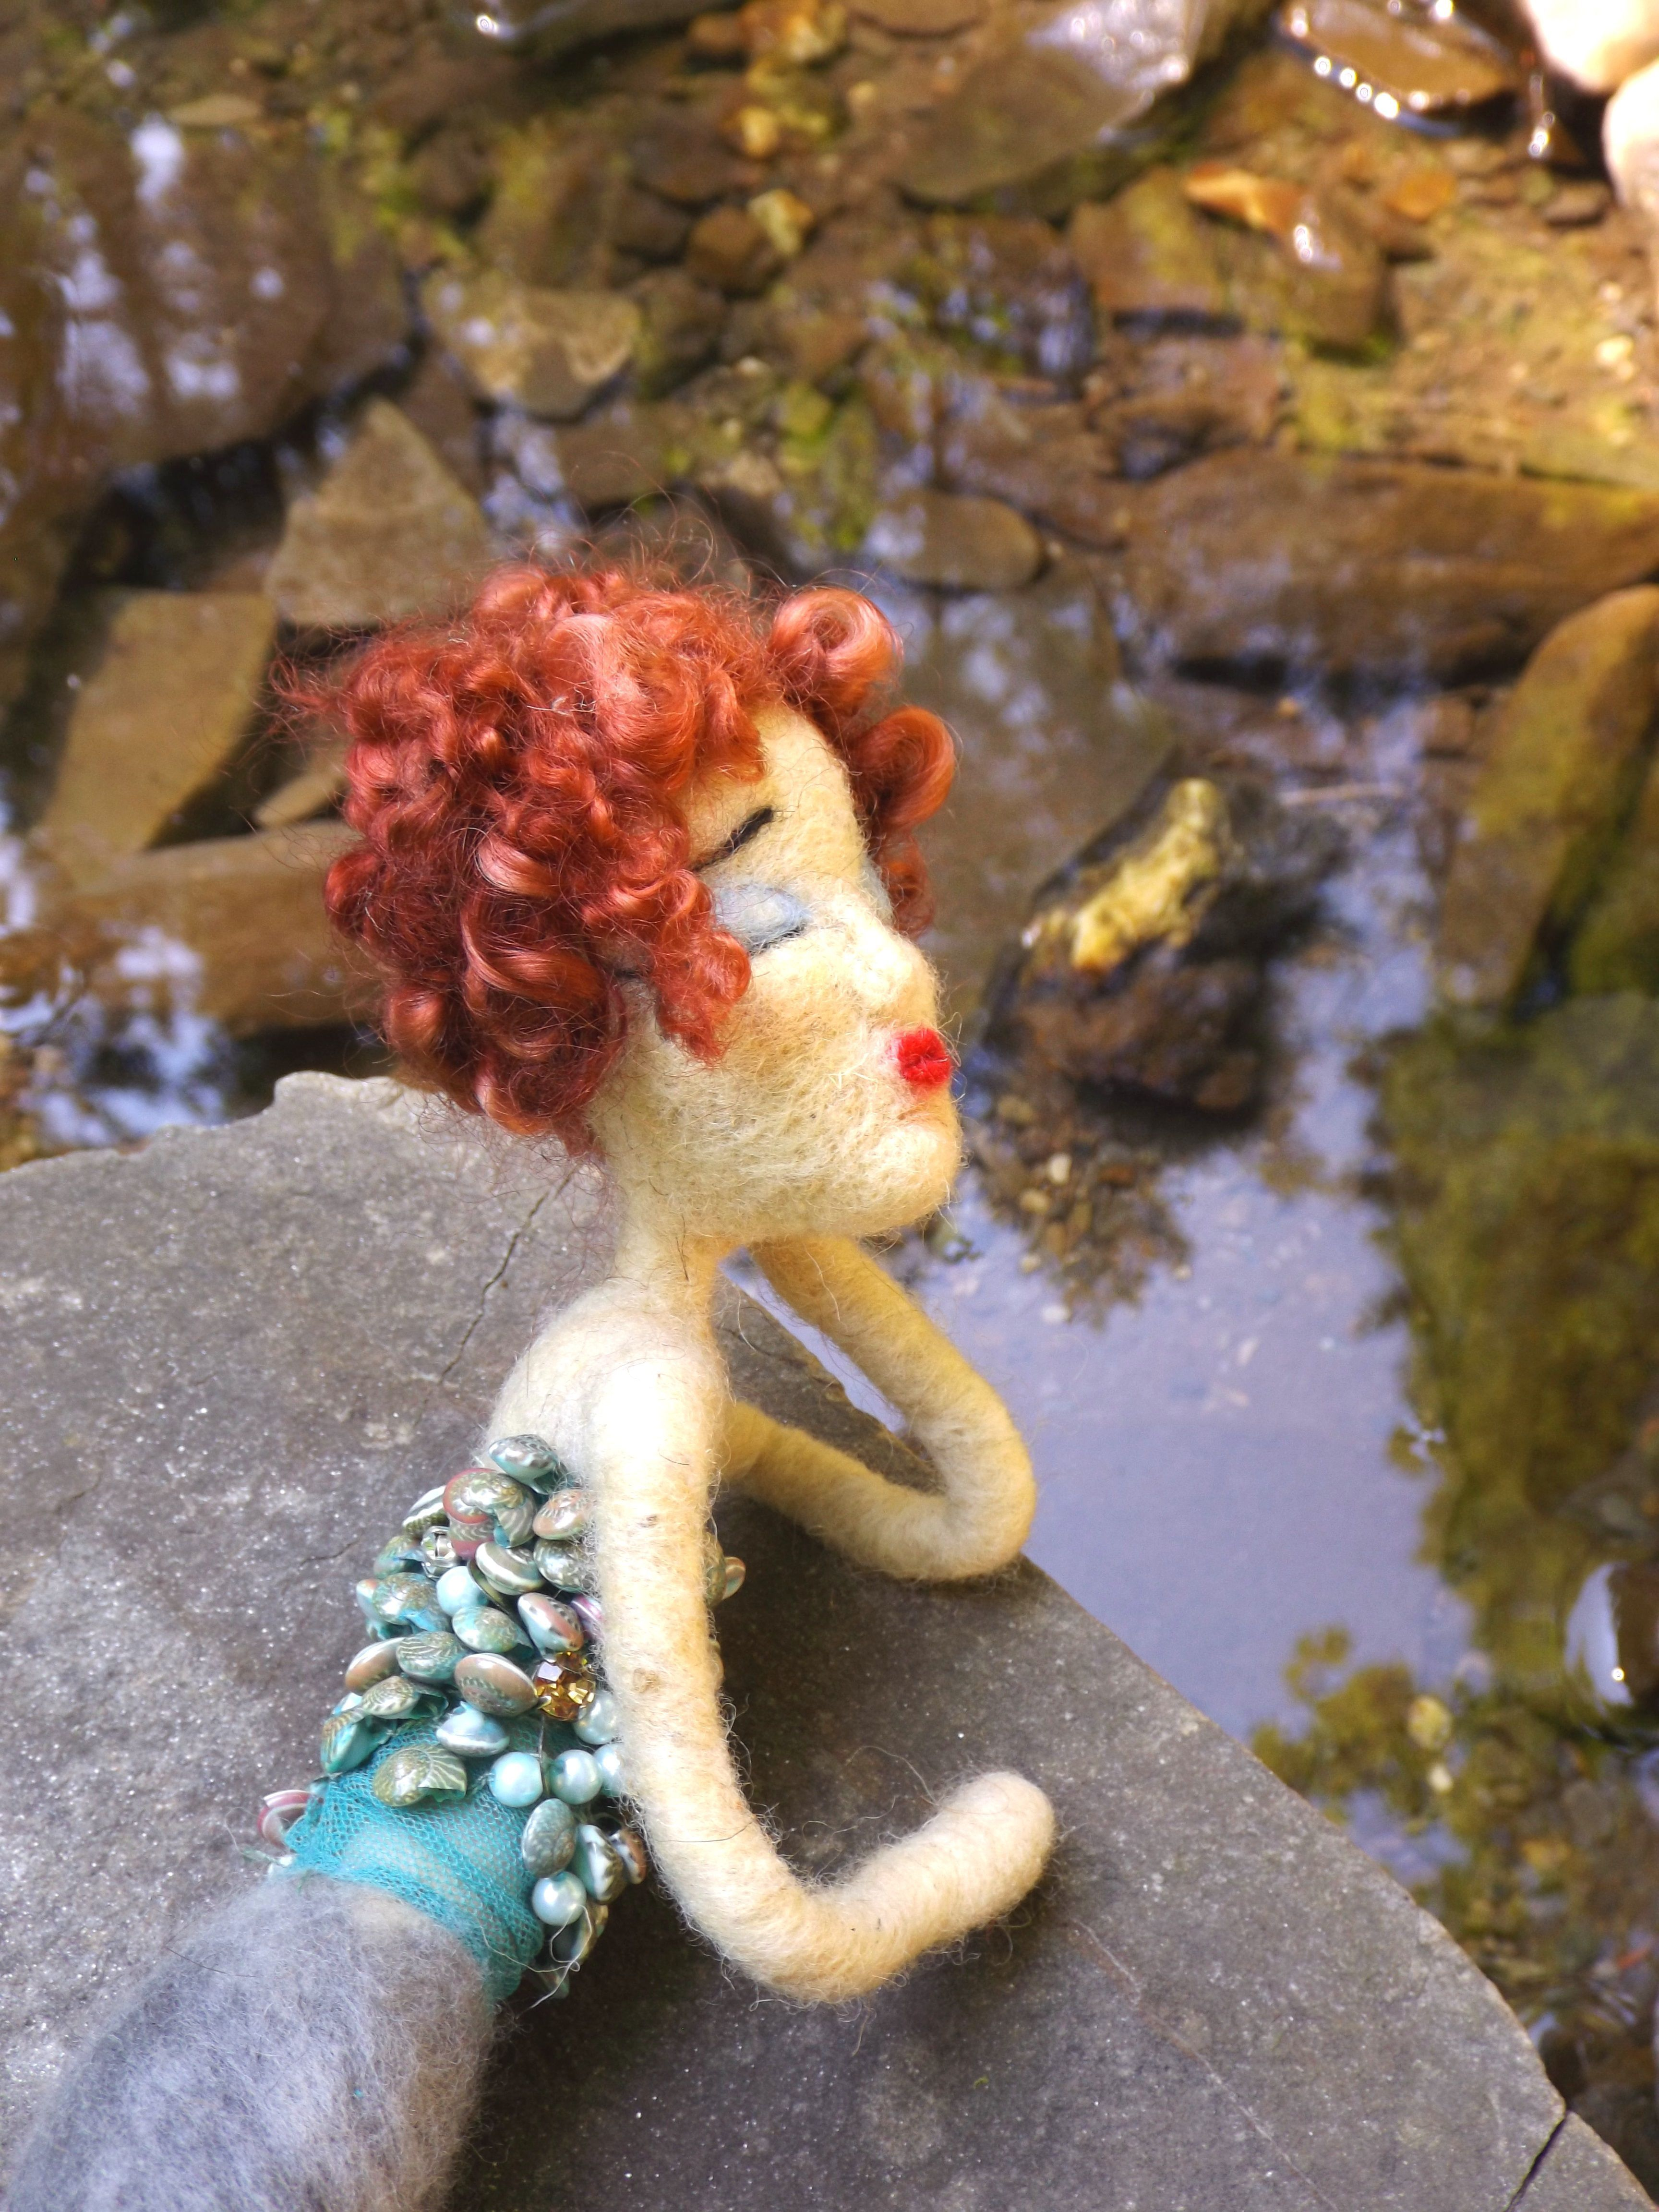 Mermaid art doll #needlefelting #mermaids #artdoll #ooakdoll #sea #dollsneedlefelt Mermaid art doll #needlefelting #mermaids #artdoll #ooakdoll #sea #dollsneedlefelt Mermaid art doll #needlefelting #mermaids #artdoll #ooakdoll #sea #dollsneedlefelt Mermaid art doll #needlefelting #mermaids #artdoll #ooakdoll #sea #dollsneedlefelt Mermaid art doll #needlefelting #mermaids #artdoll #ooakdoll #sea #dollsneedlefelt Mermaid art doll #needlefelting #mermaids #artdoll #ooakdoll #sea #dollsneedlefelt Me #dollsneedlefelt